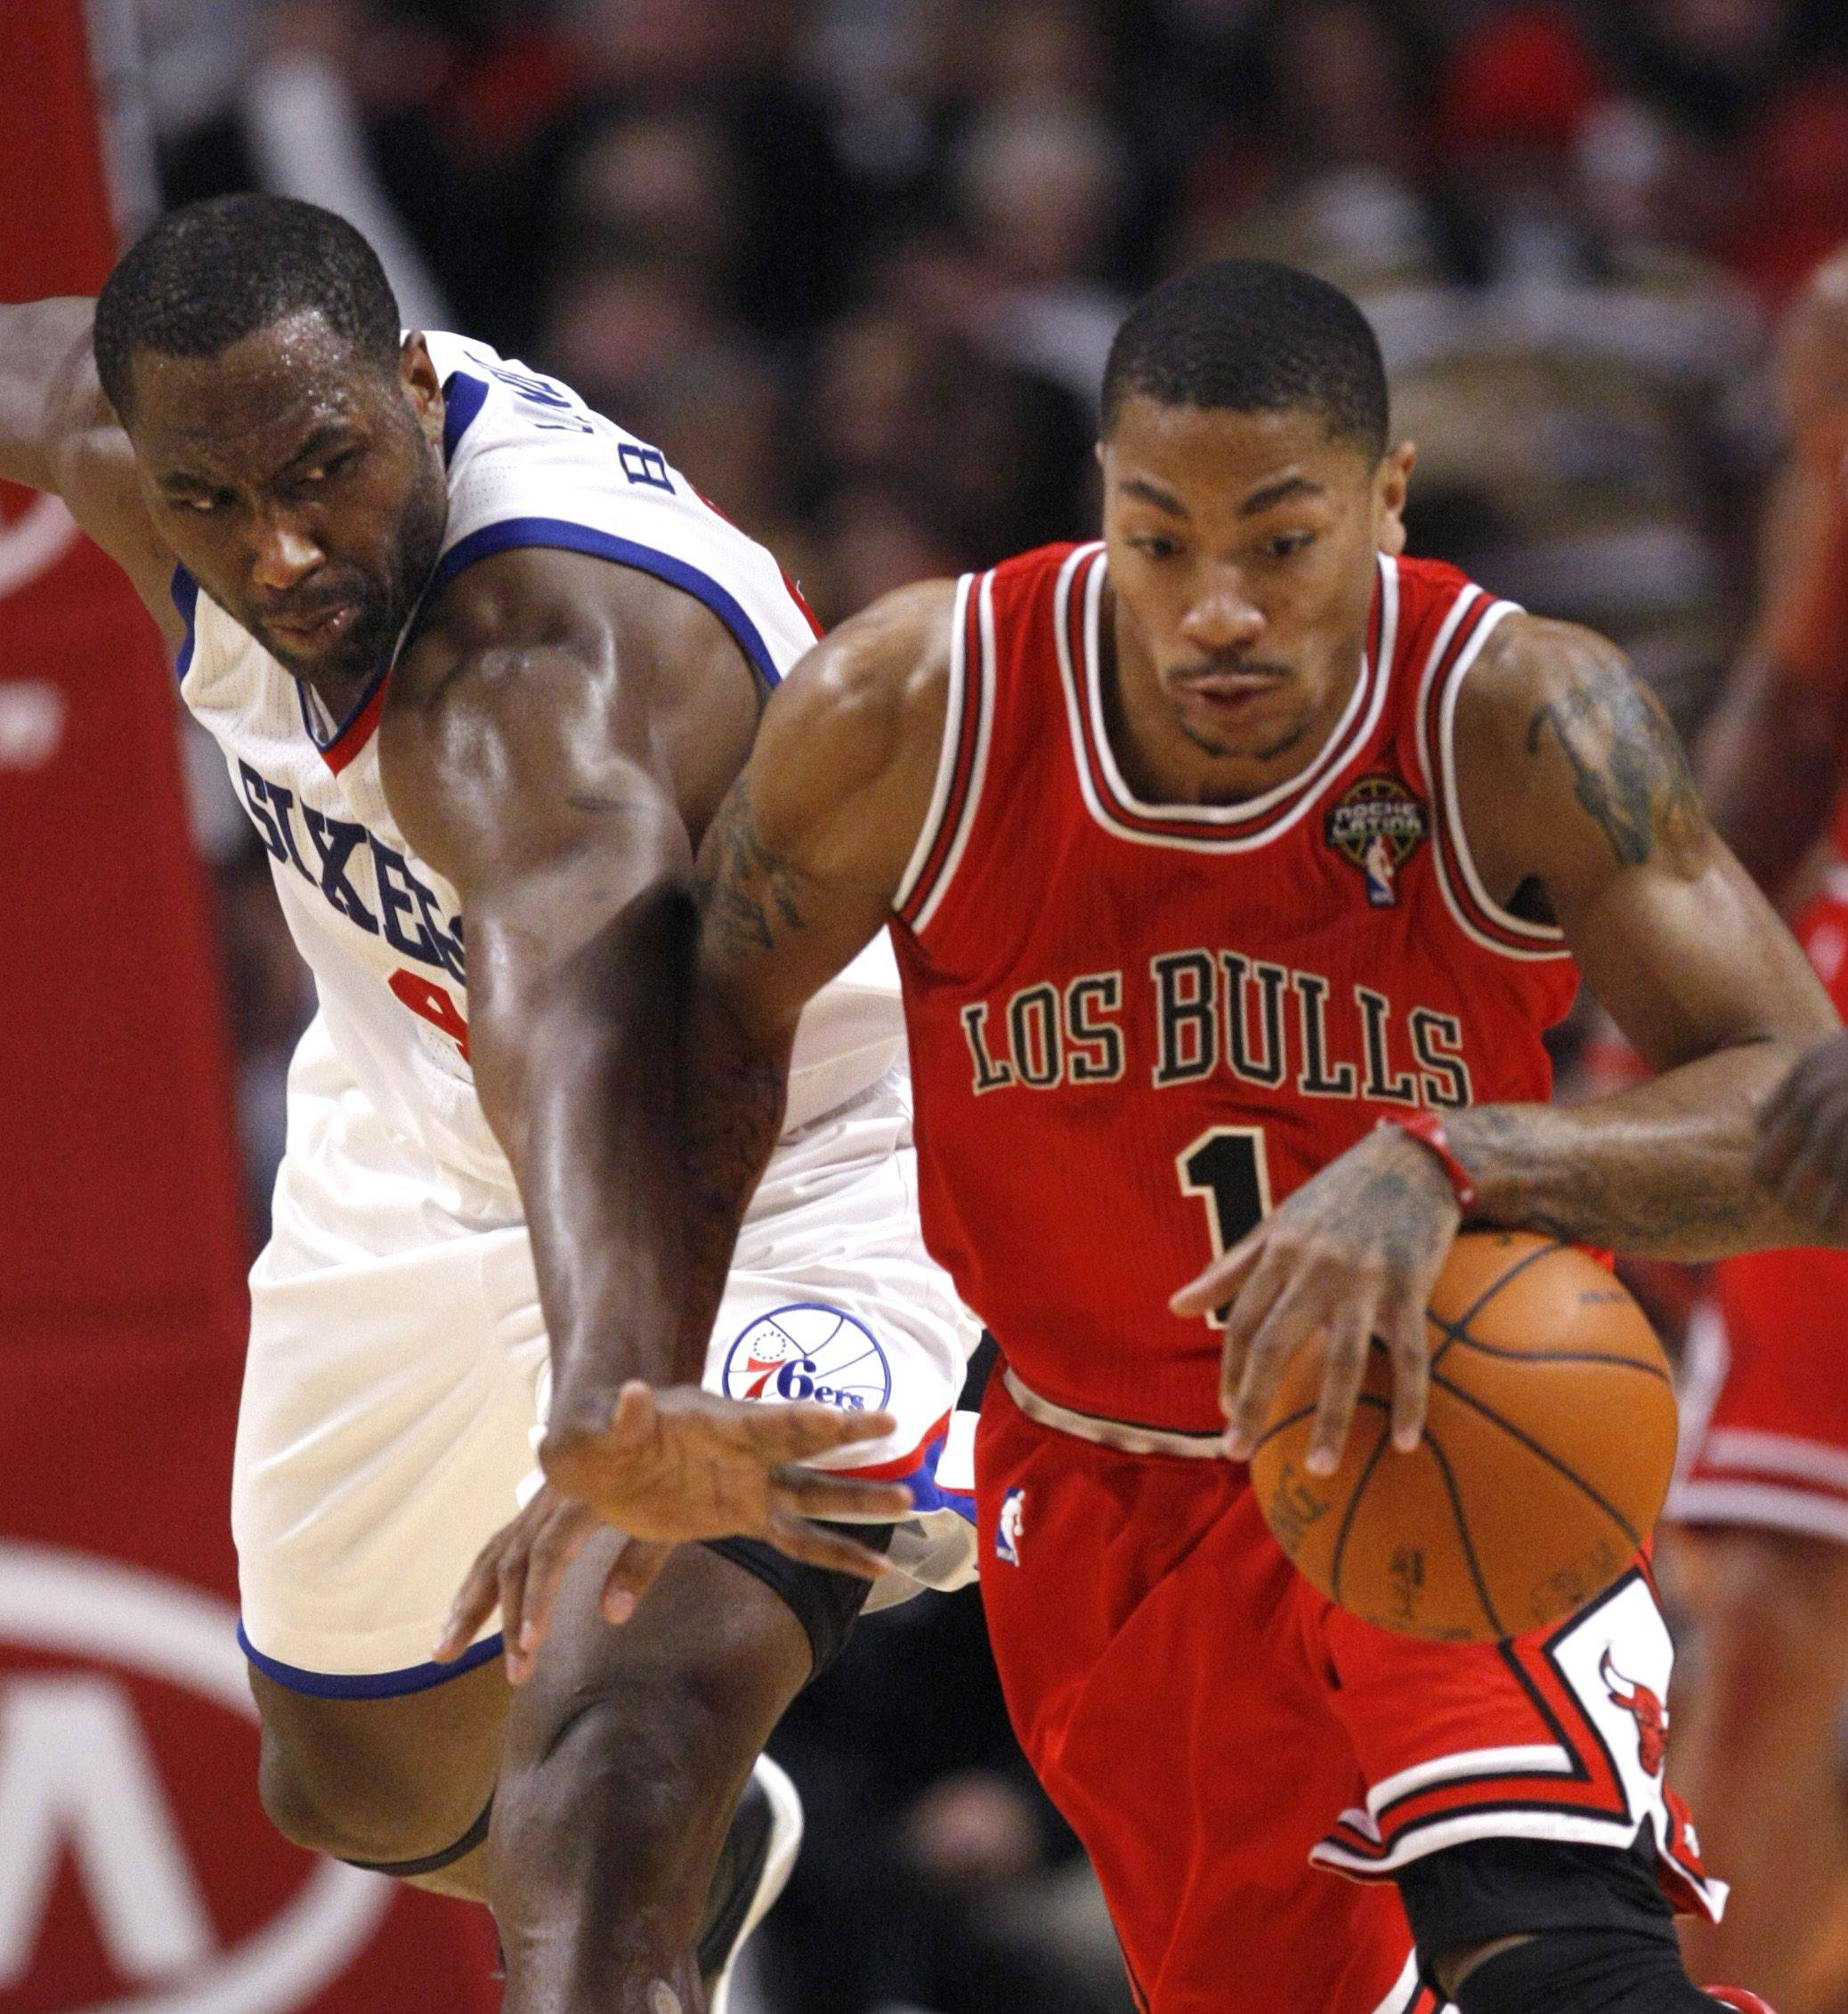 Philadelphia 76ers forward Elton Brand, left, challenges Chicago Bulls guard Derrick Rose during the second half of an NBA basketball game, Monday, March 28, 2011, in Chicago. The 76ers won 97-85.